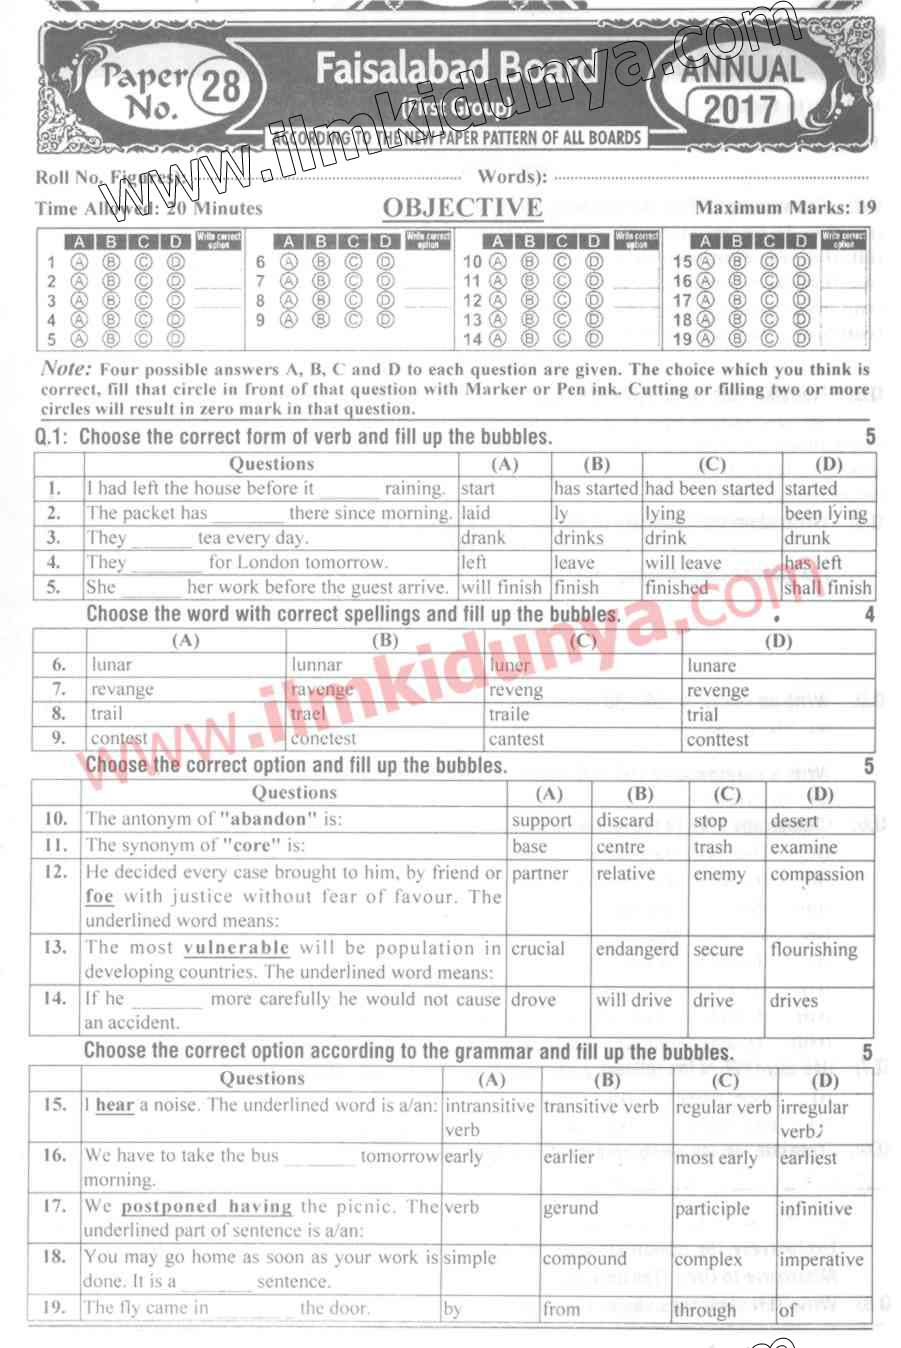 Past Papers 2017 Faisalabad Board 10th Class English Group